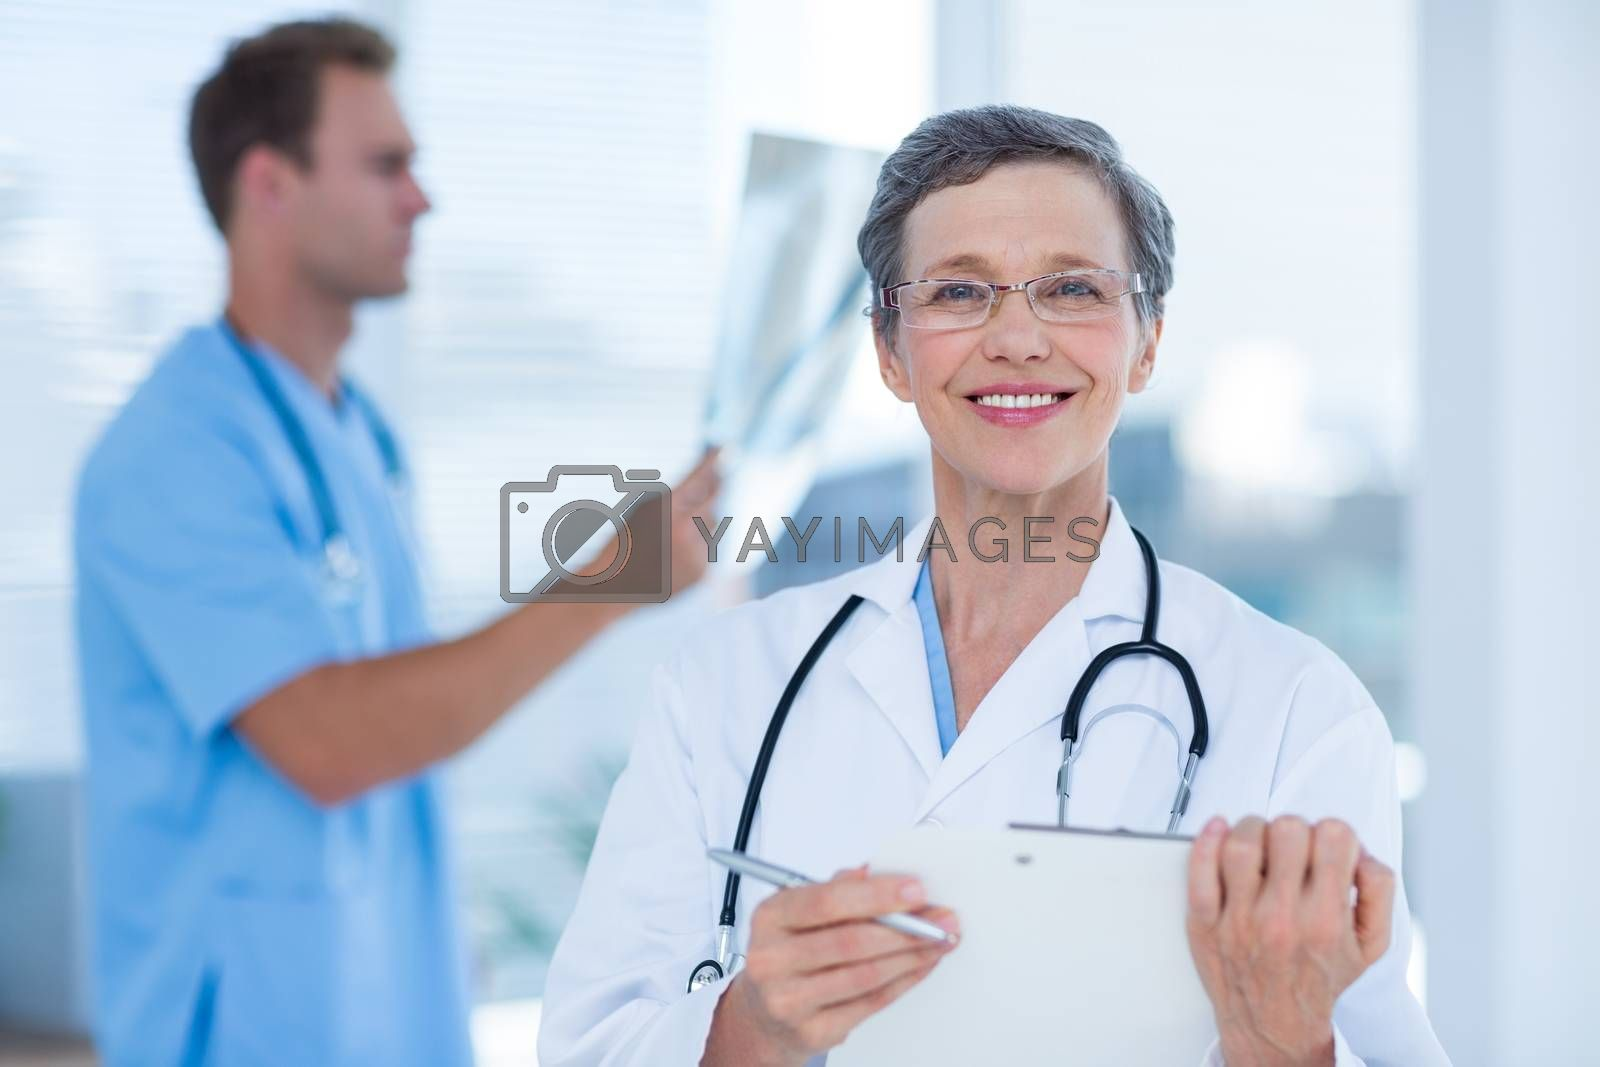 Royalty free image of Smiling doctor holding a clipboard by Wavebreakmedia